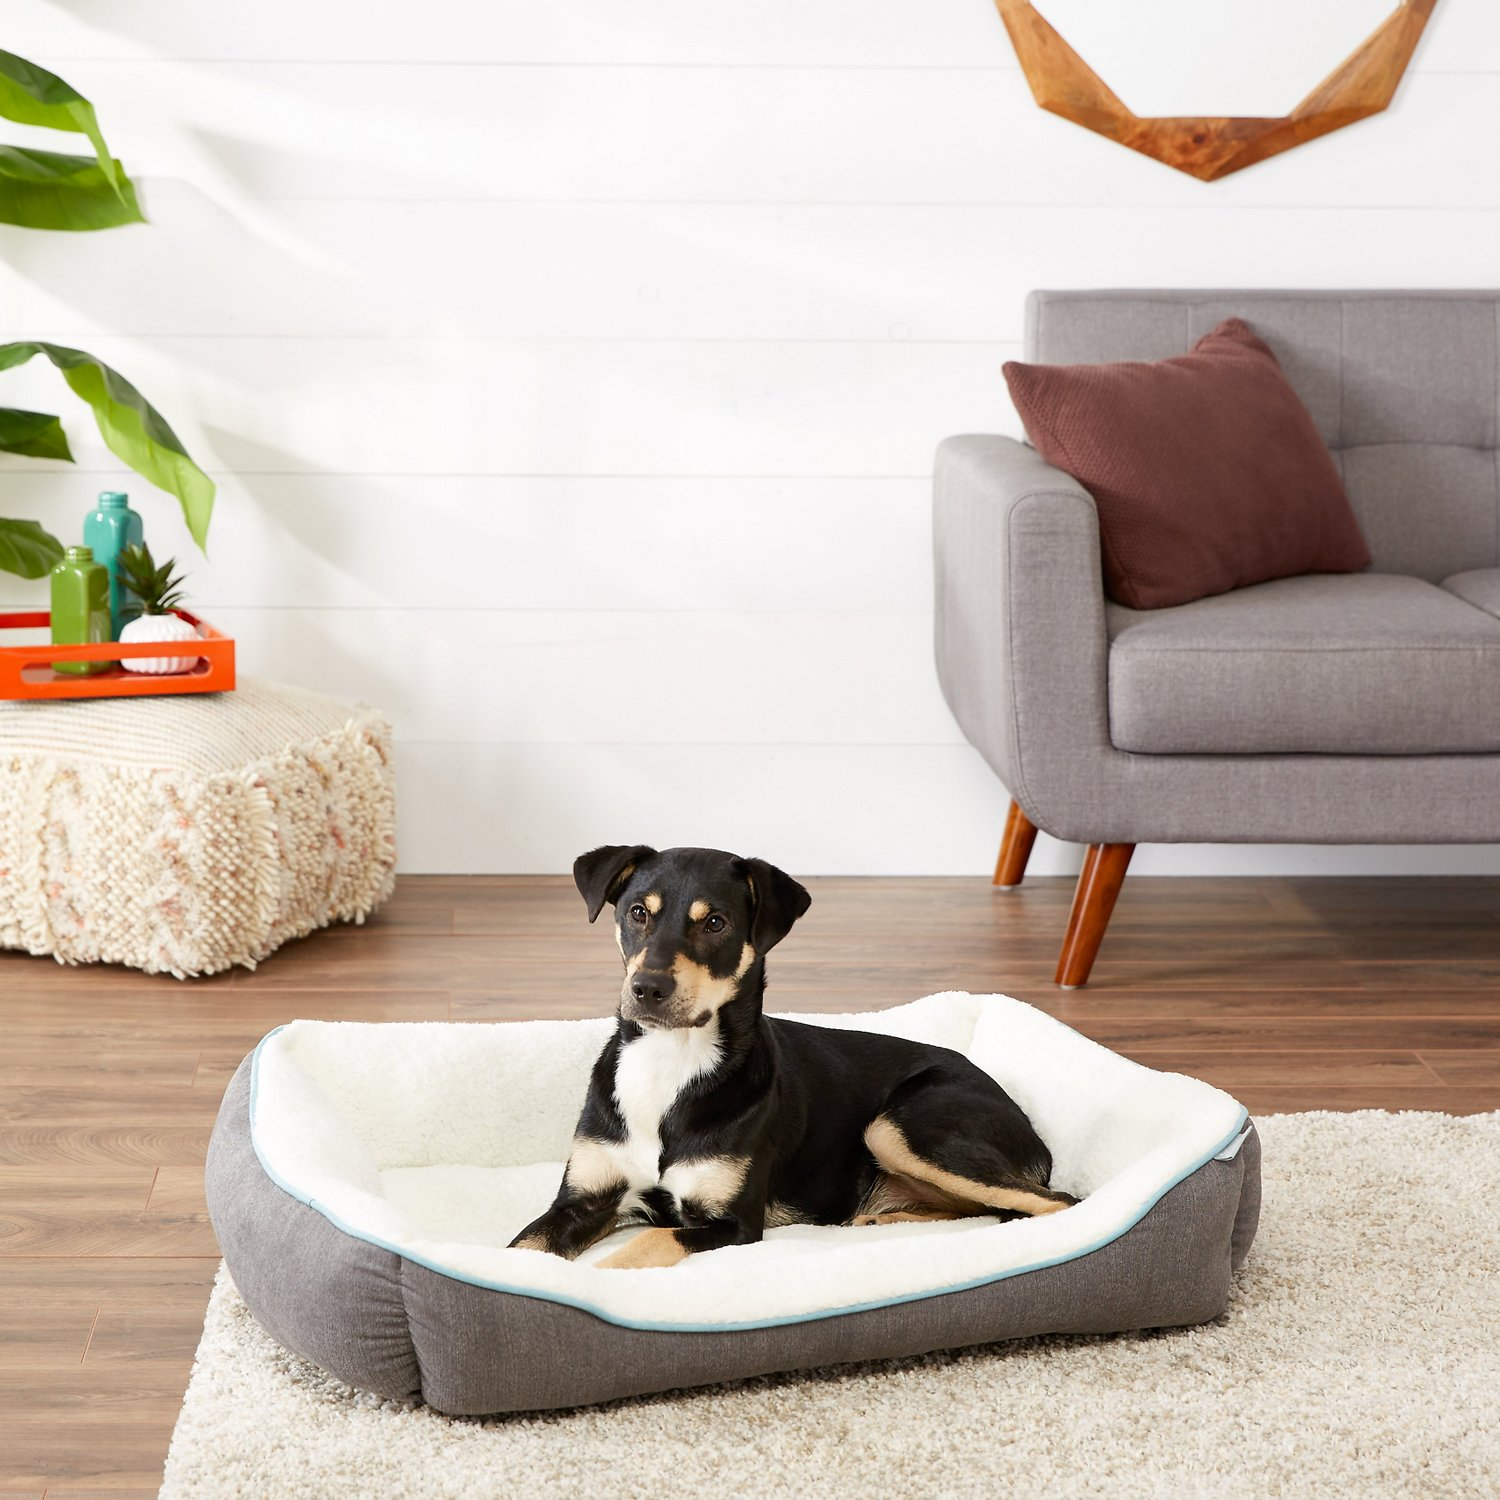 Lovely Frisco Sherpa Bolster Rectangular Dog Bed , Gray, Large - Chewy.com RM04